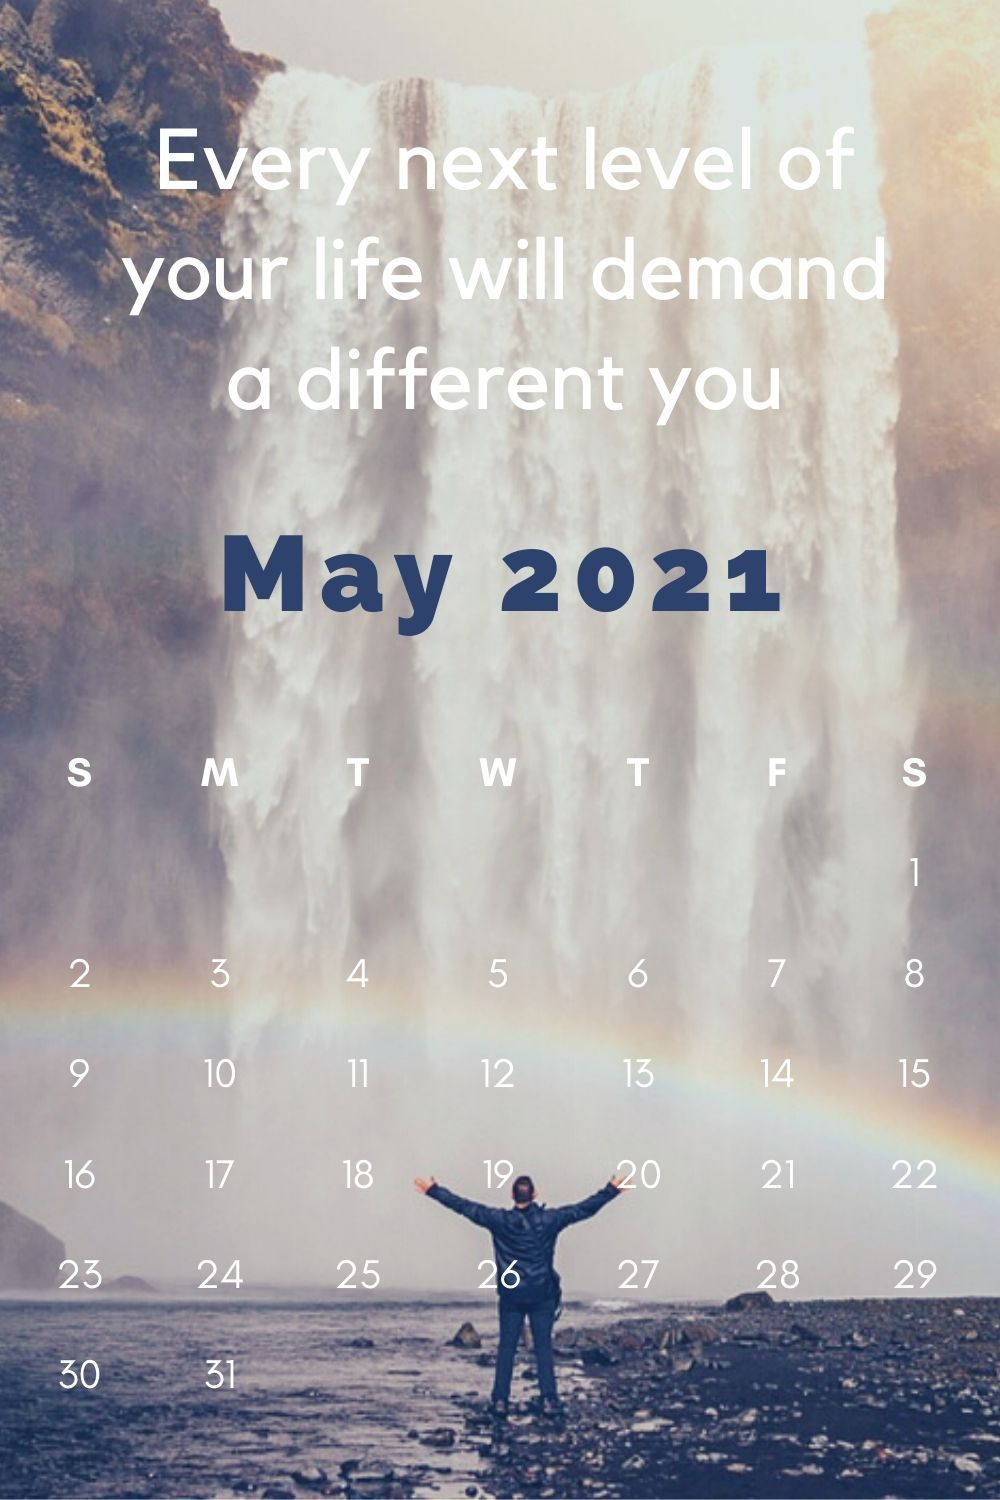 10 Positive Quotes 2021 Calendar Reference Inspirational September 2021 Calendar with Quotes.